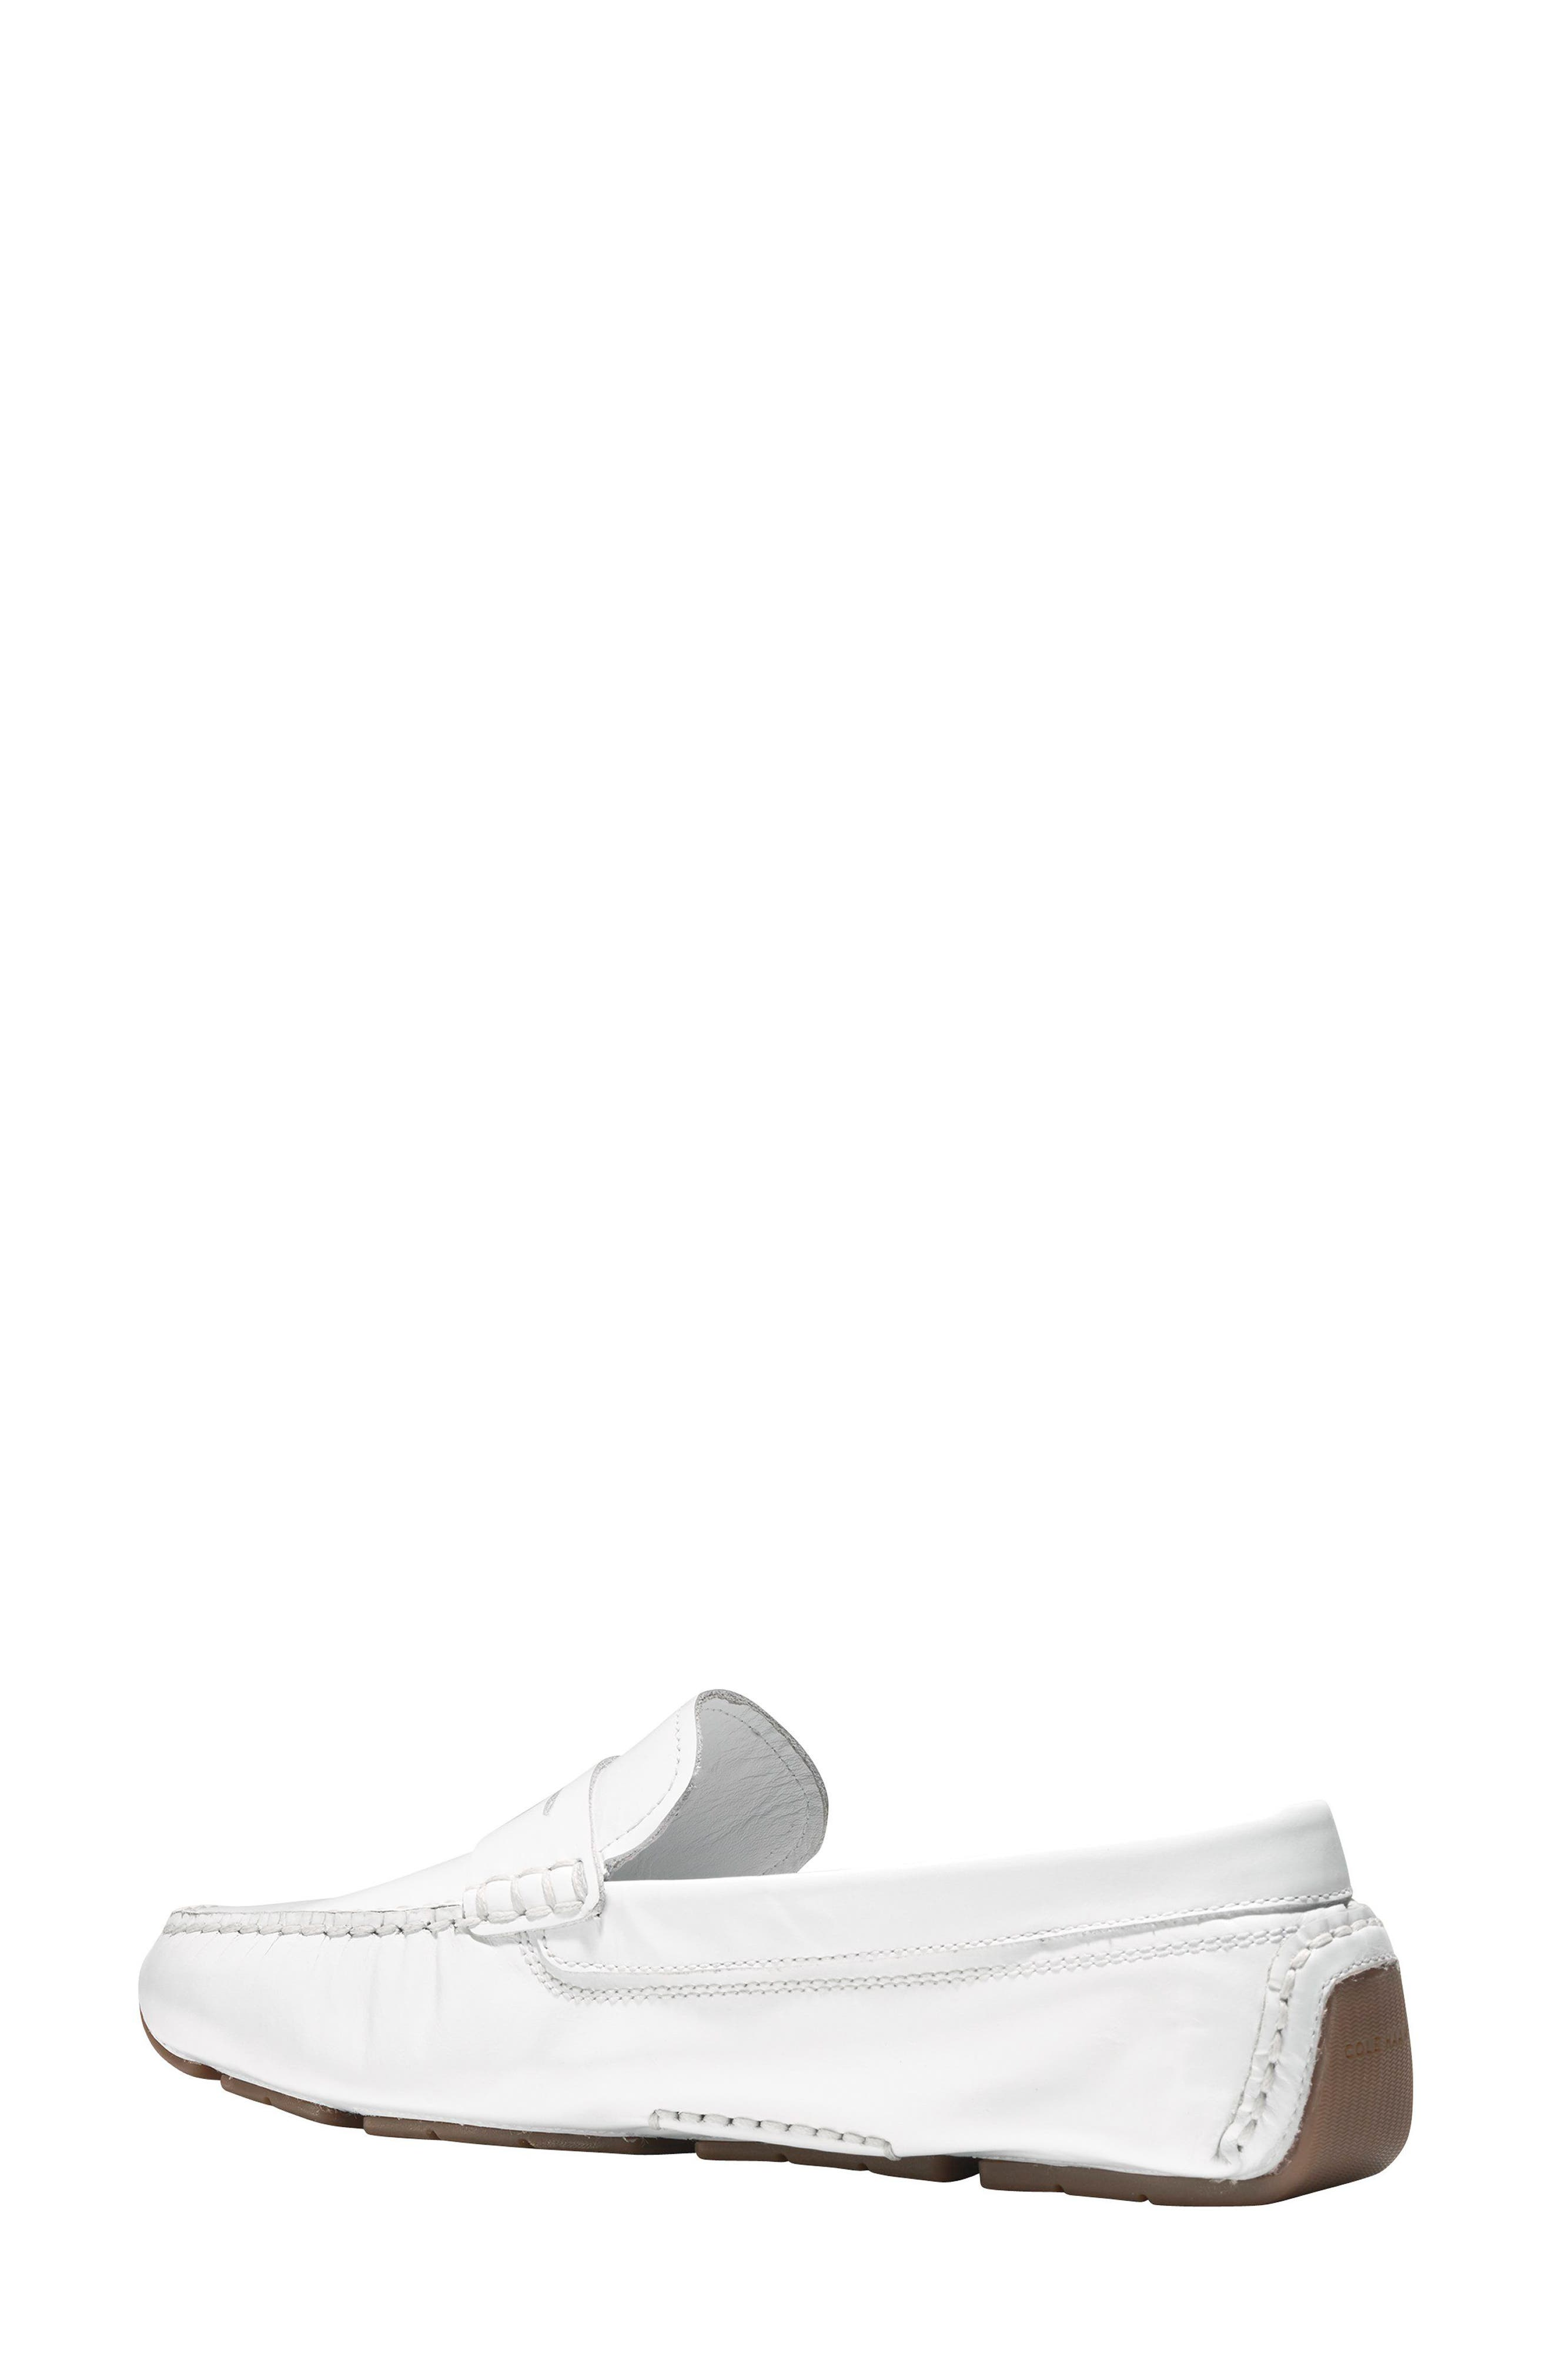 Rodeo Penny Driving Loafer,                             Alternate thumbnail 2, color,                             Optic White Leather